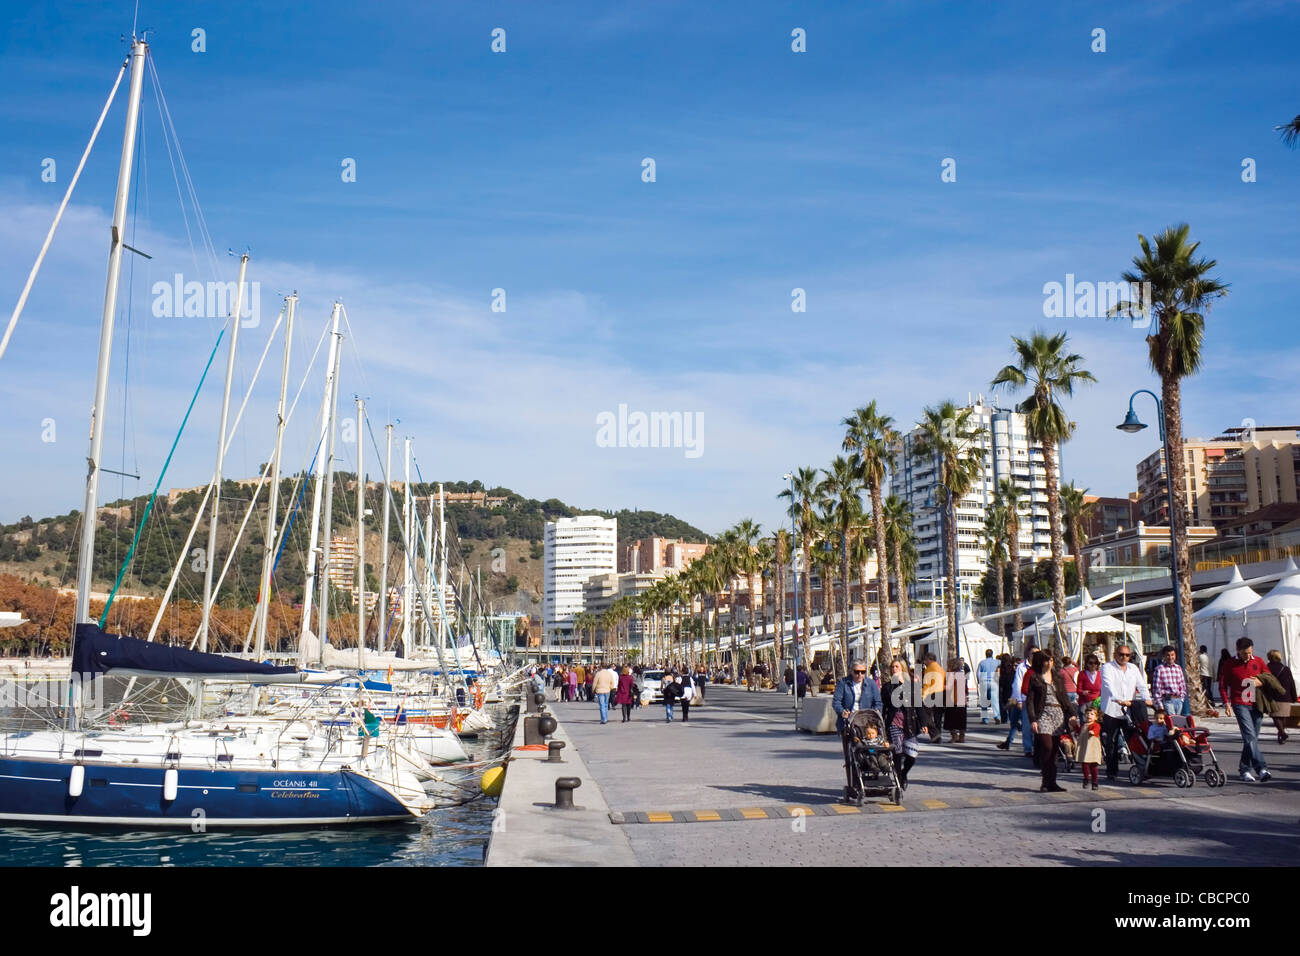 The newly renovated port of Malaga, Costa del Sol, Andalucia, Spain. - Stock Image